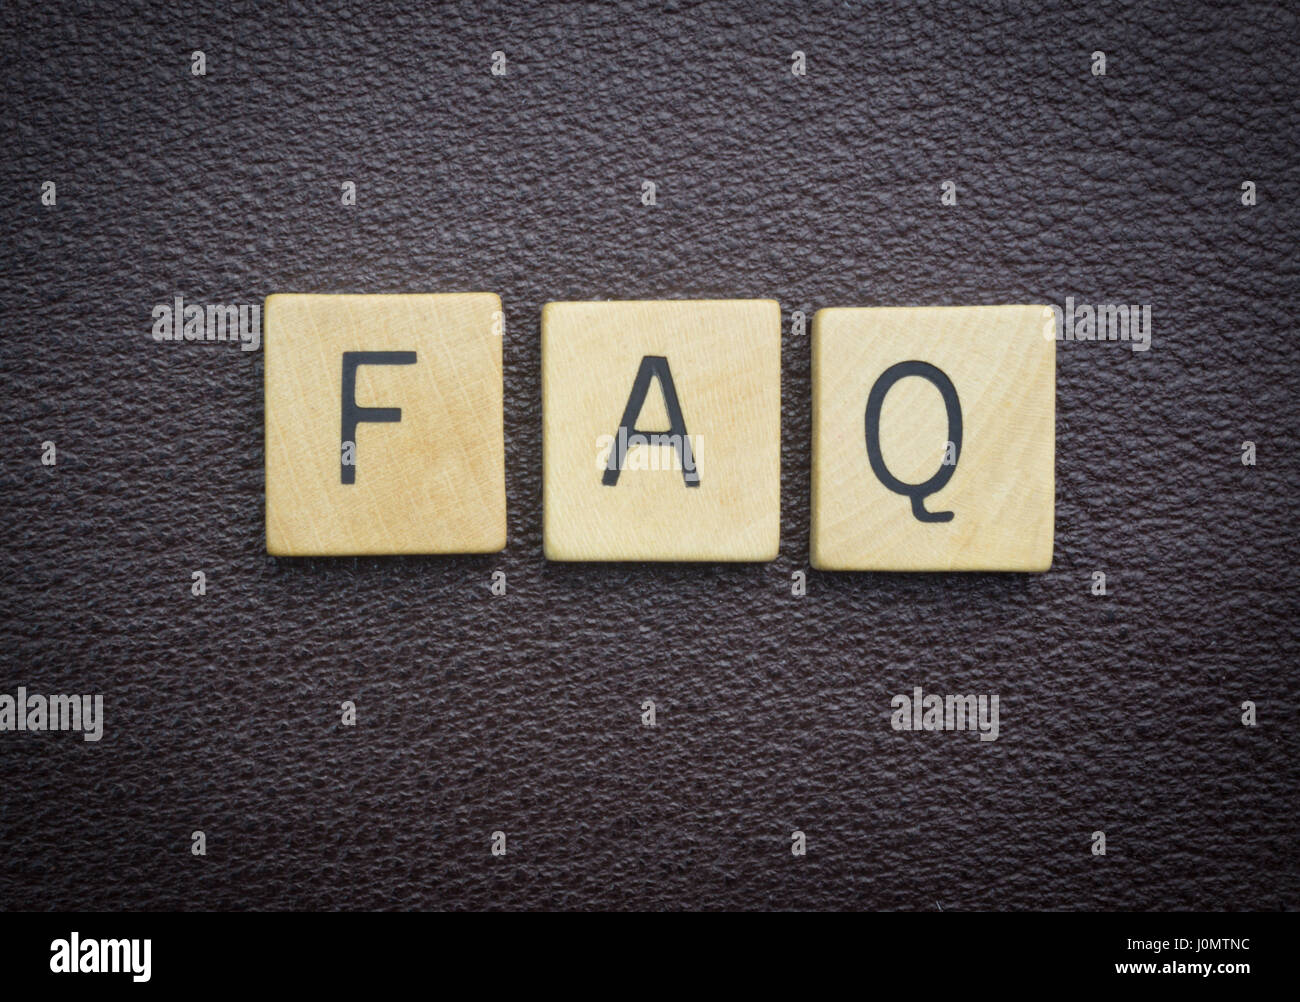 FAQ word concept wood pieces on brown leather - Stock Image